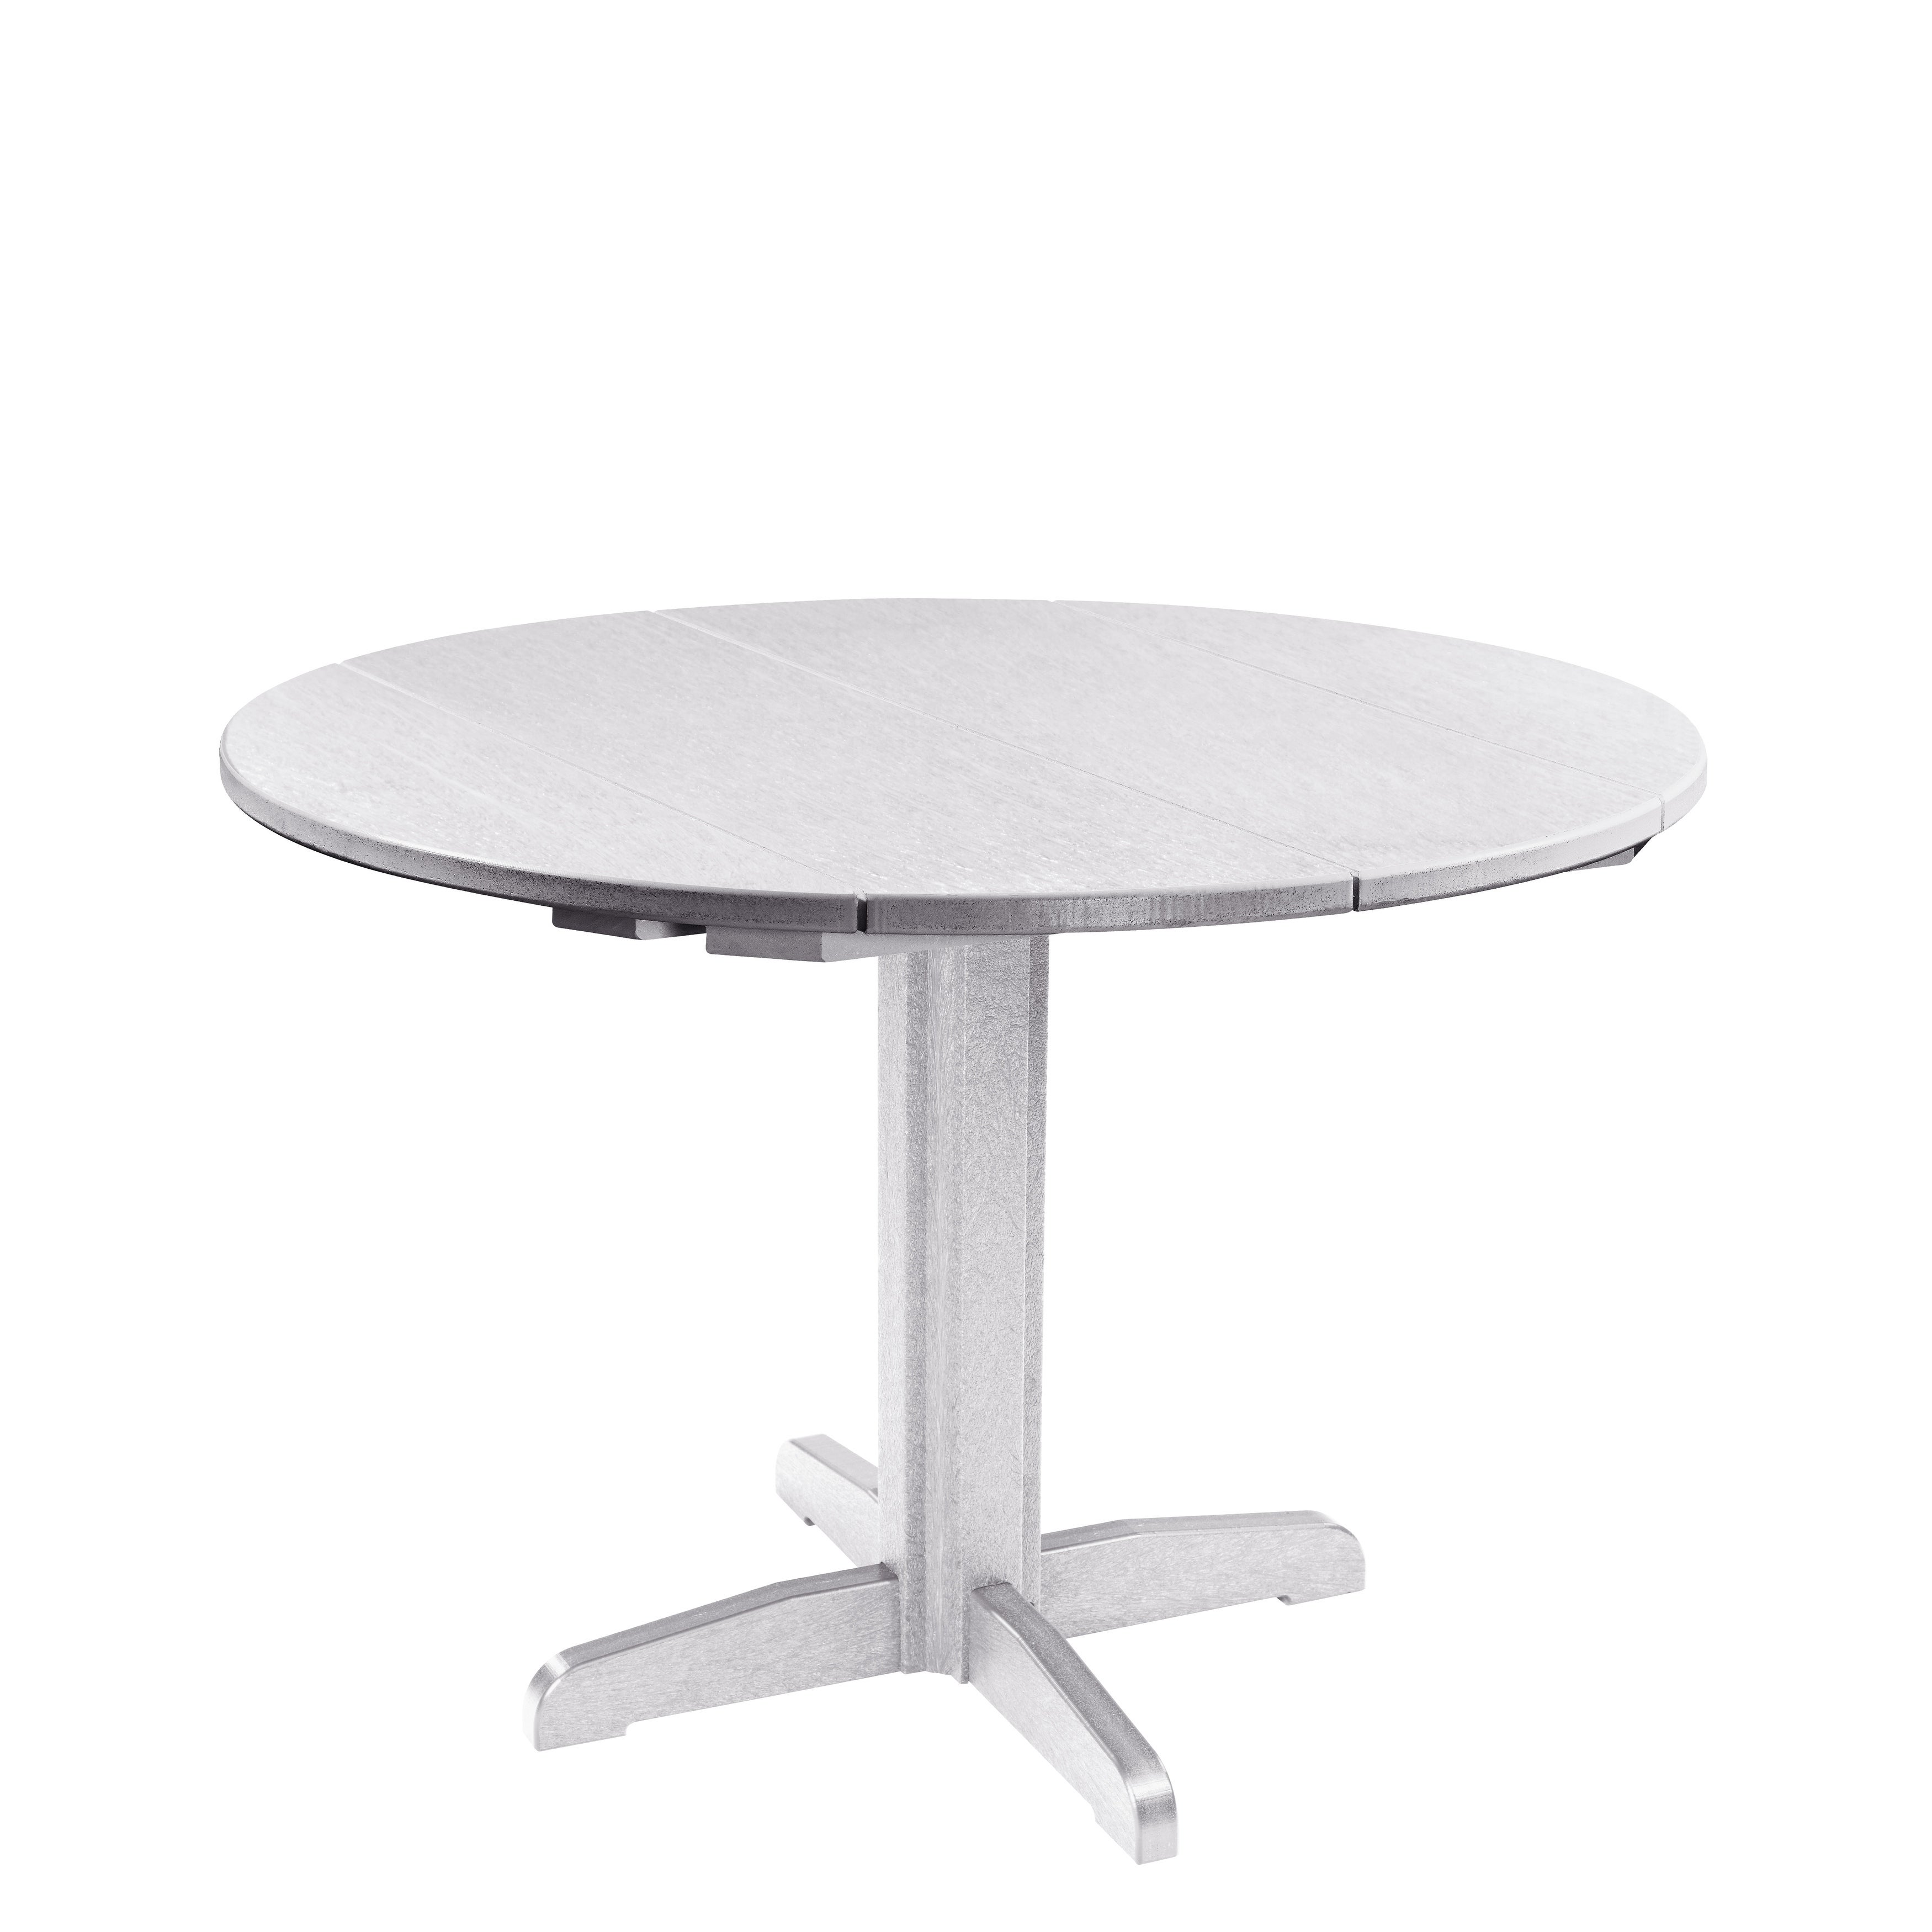 Shop CR Plastics Generation Round Table Top W Dining - 30 round marble table top